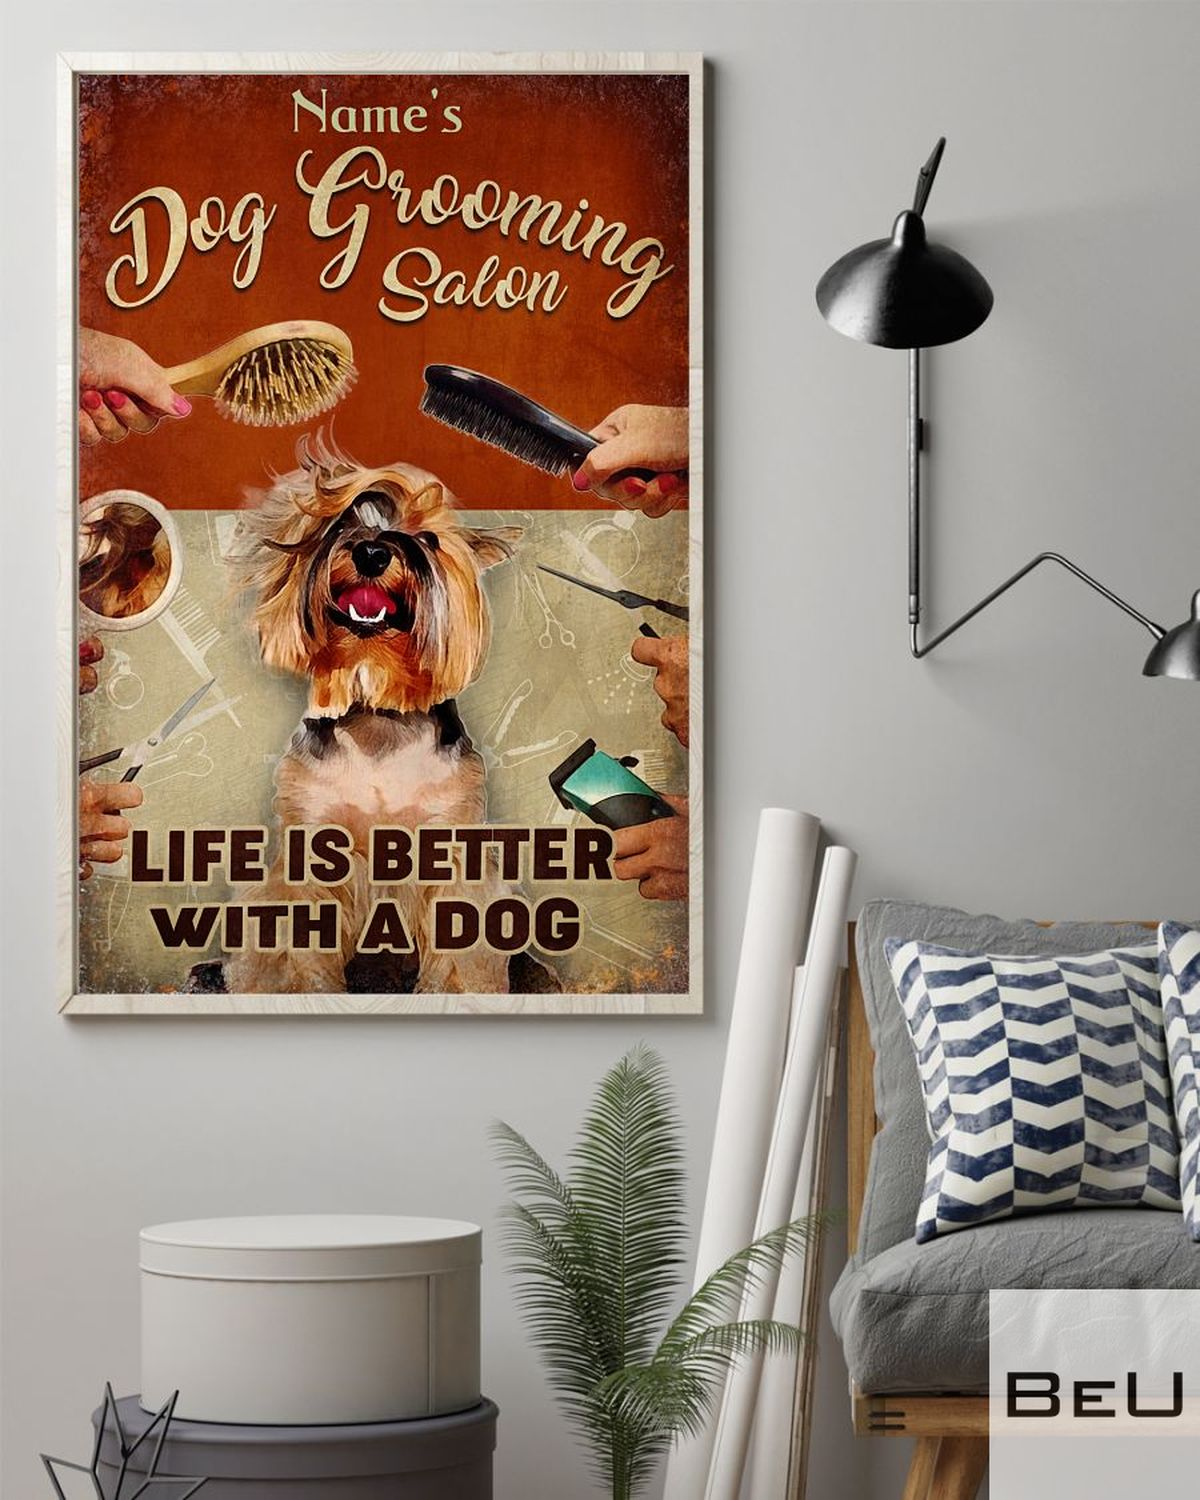 Personalized Dog Grooming Salon life is better with a dog posterz